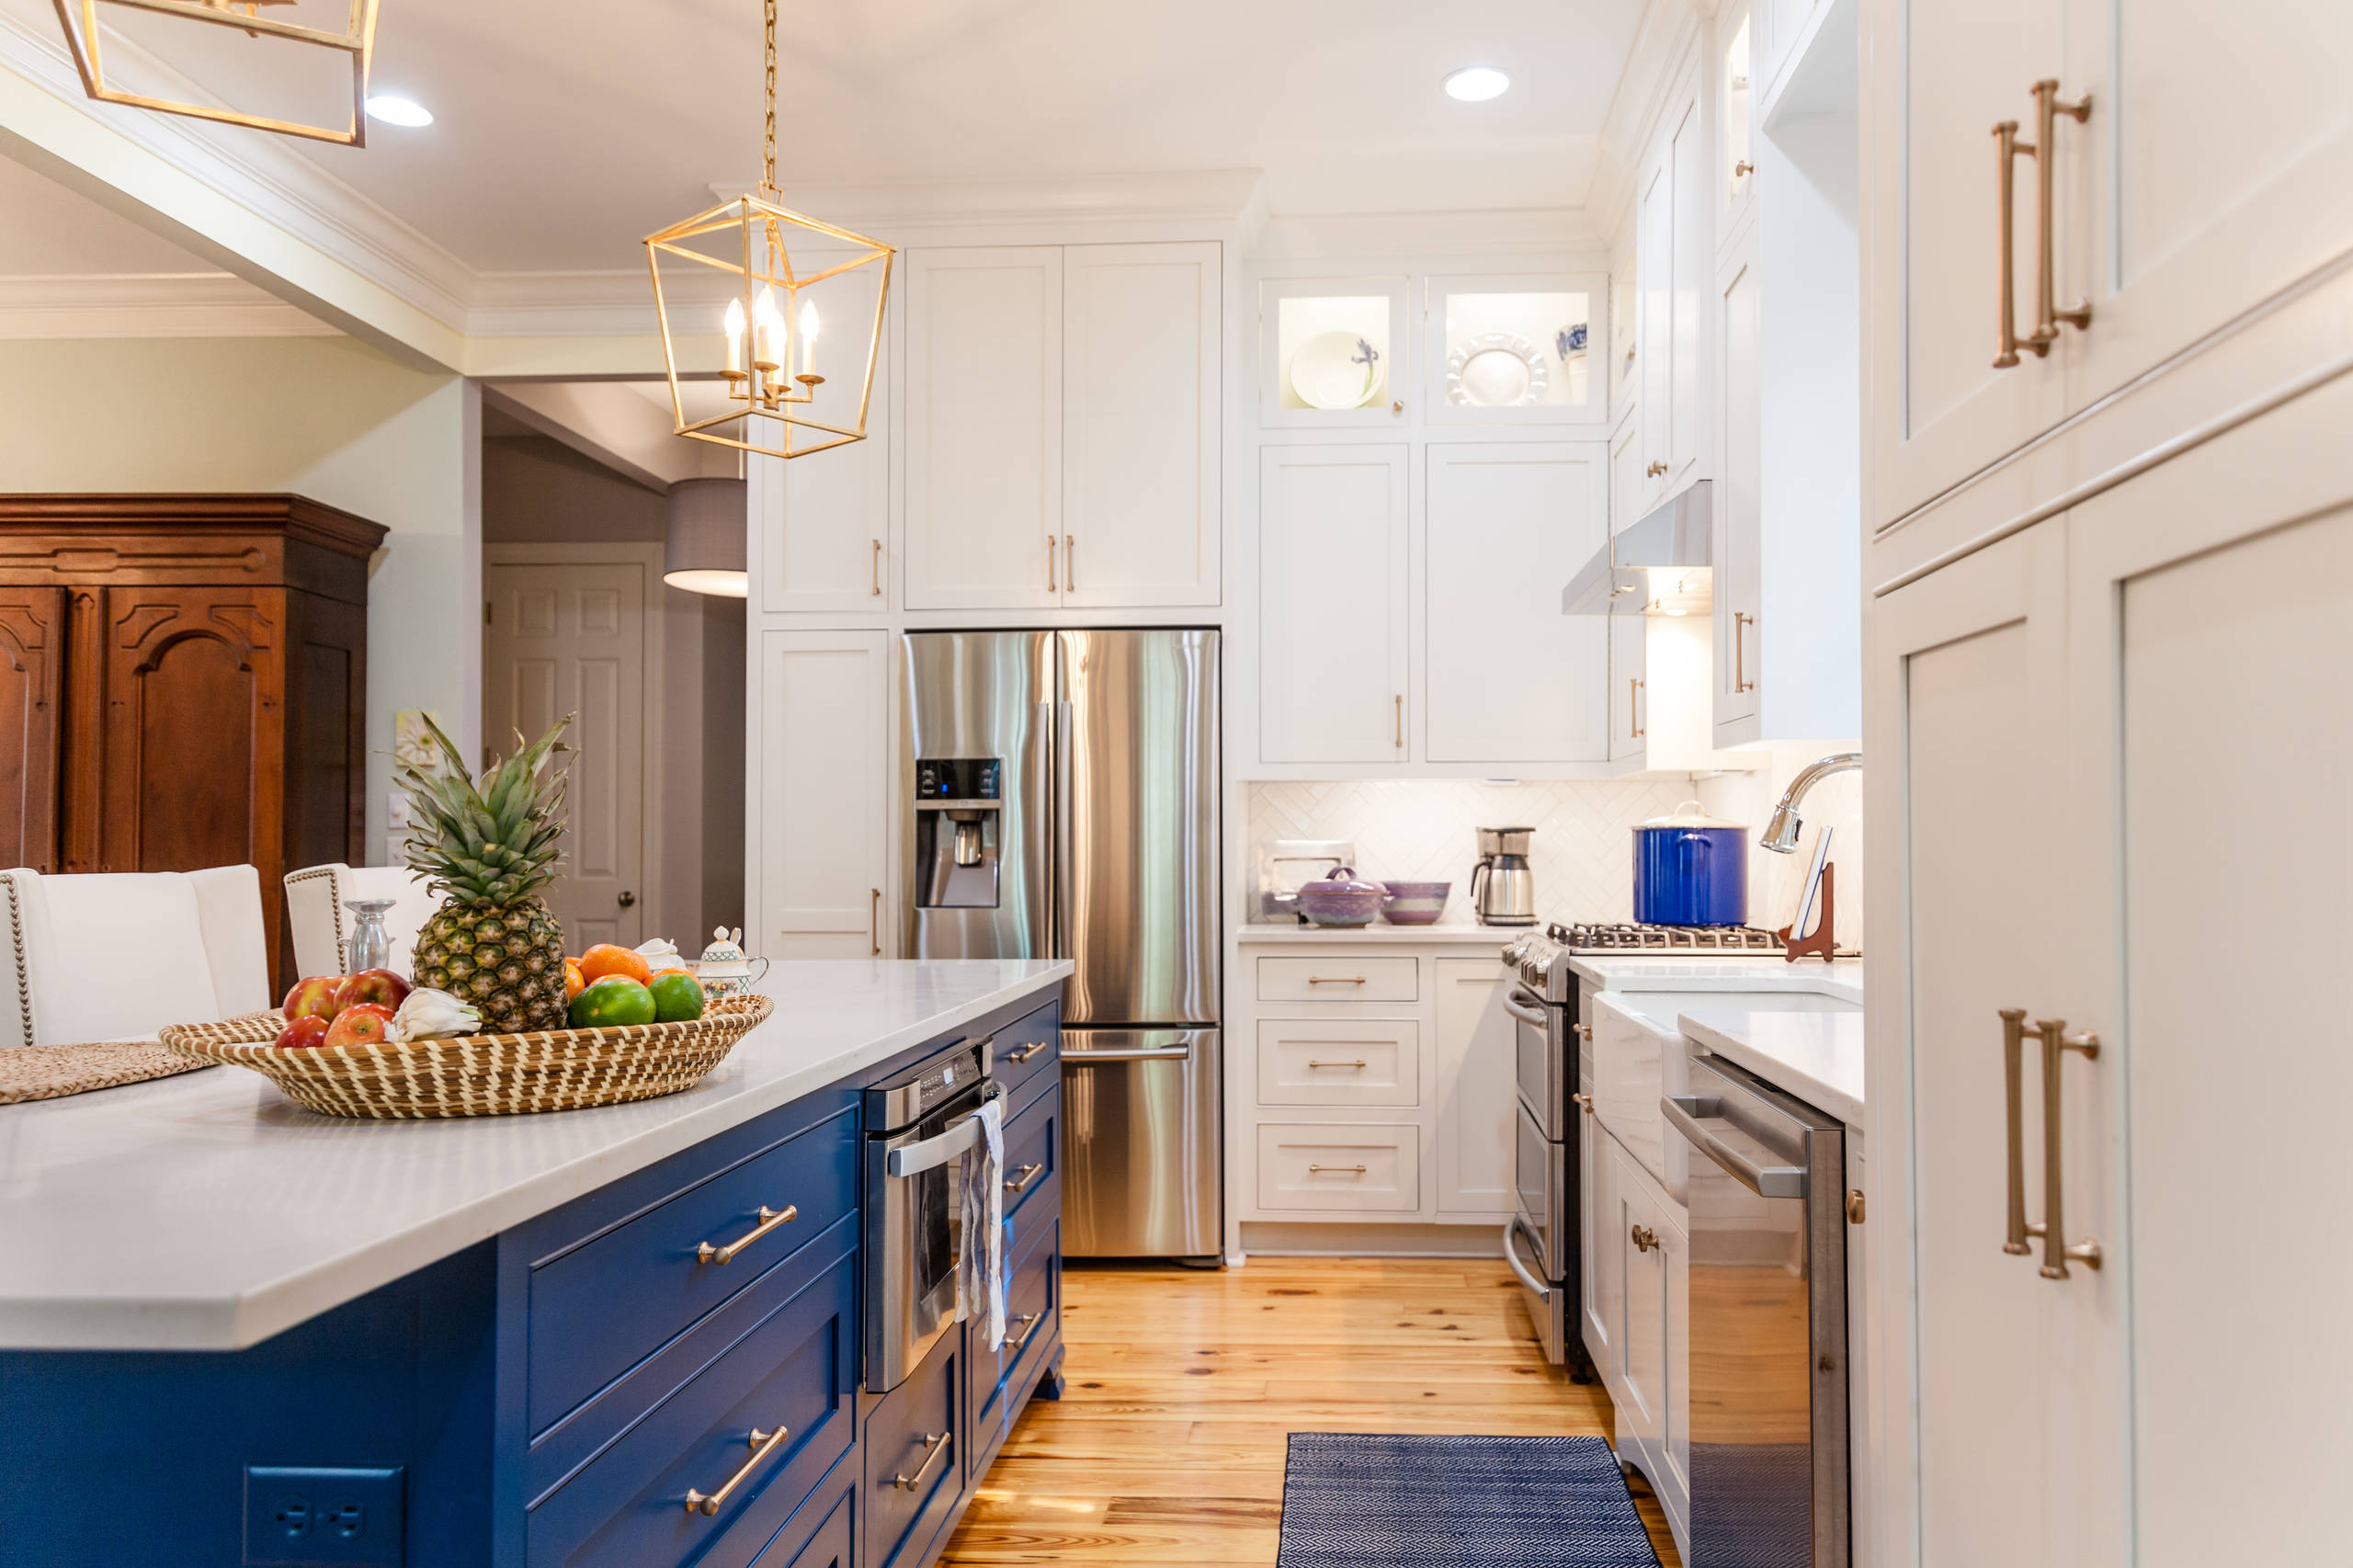 Nautical accents of brass and blue in a classic coastal kitchen